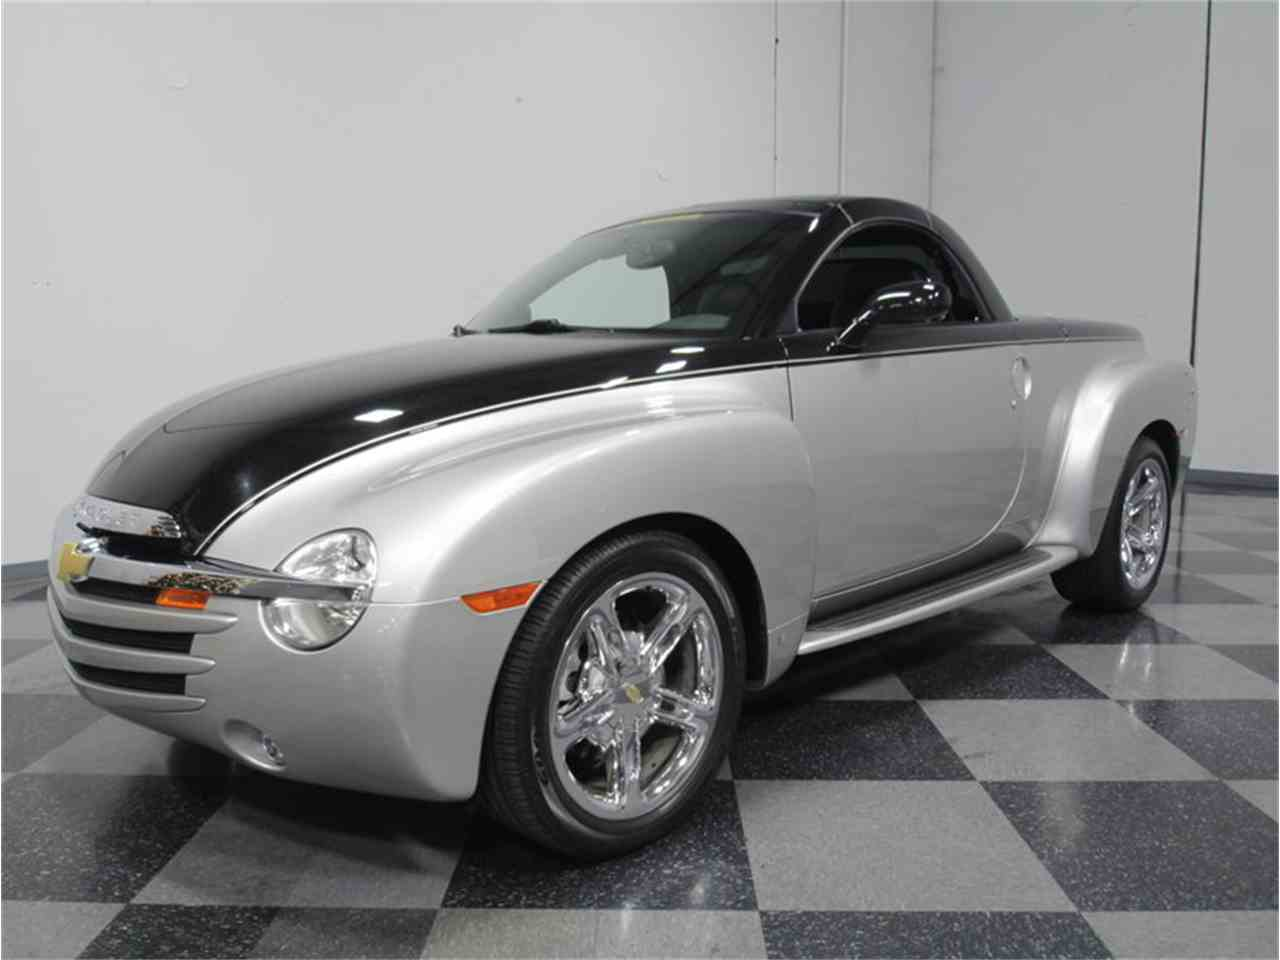 All Chevy 2006 chevrolet ssr for sale : 2006 Chevrolet SSR Supercharged for Sale | ClassicCars.com | CC-933508